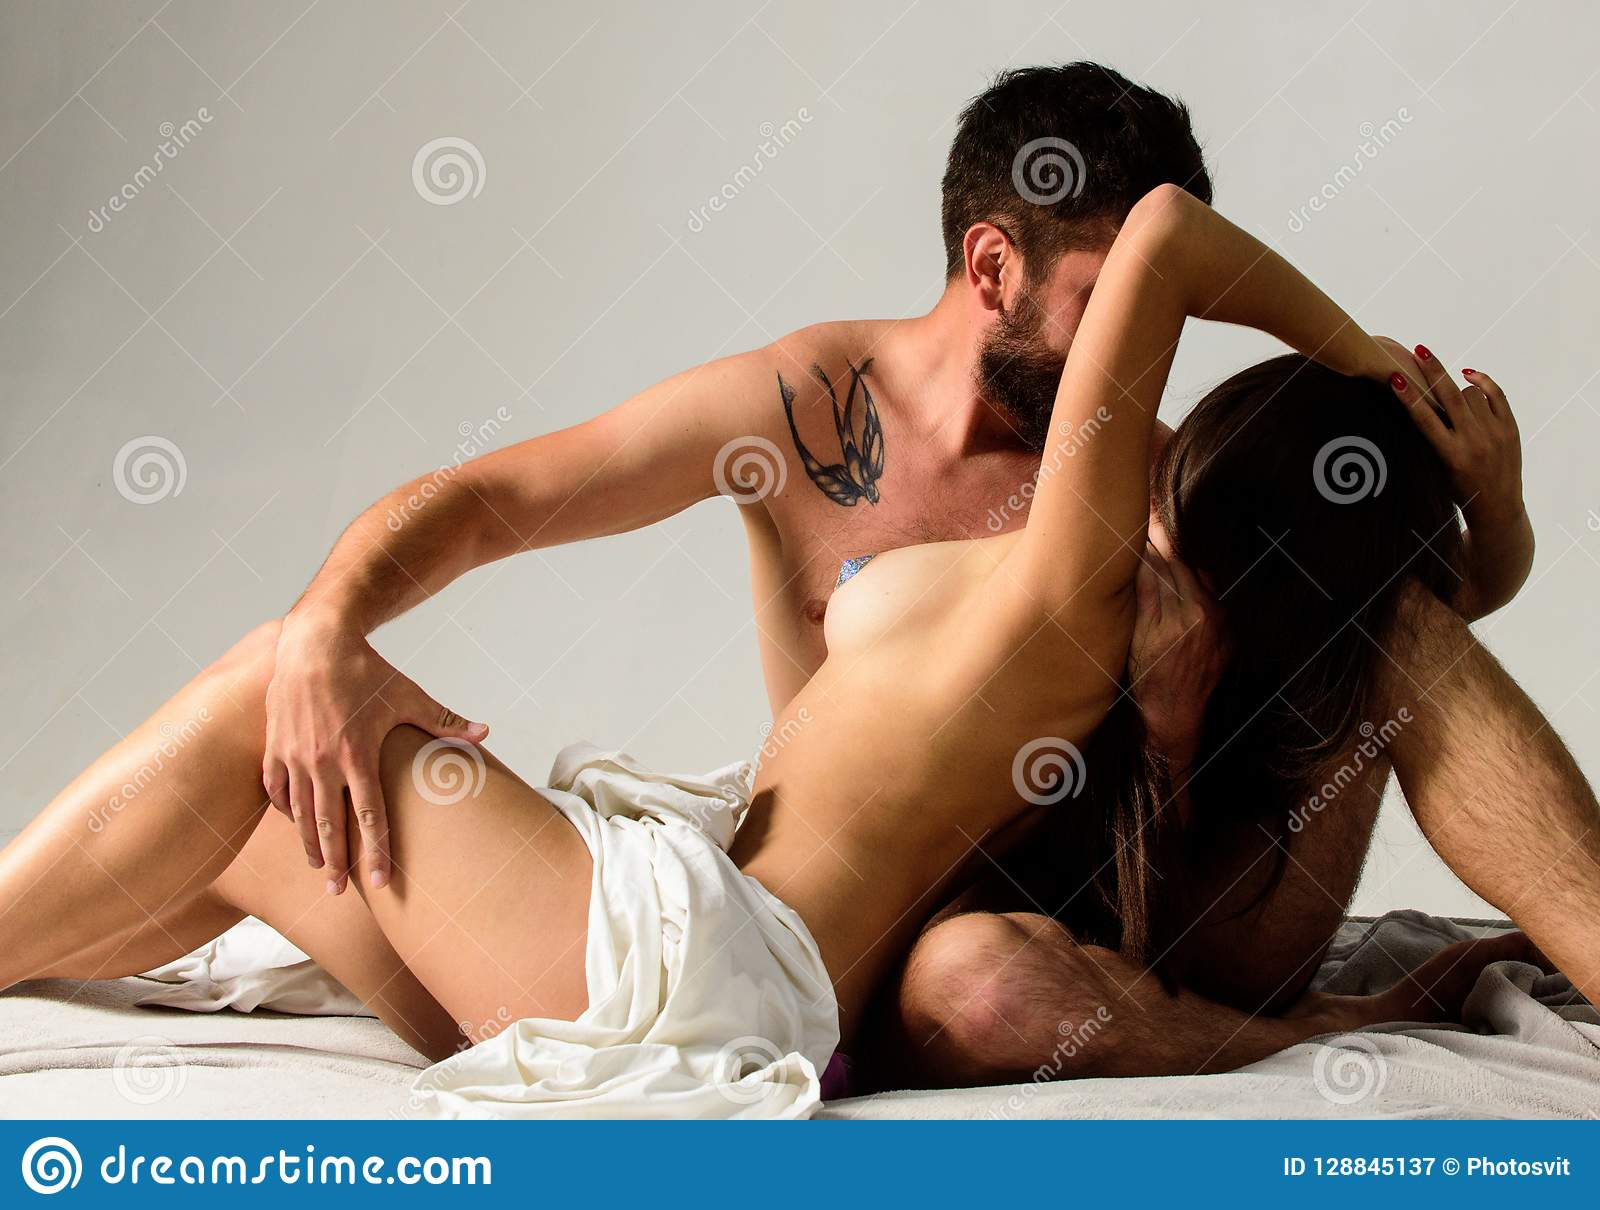 Hot couple during sex